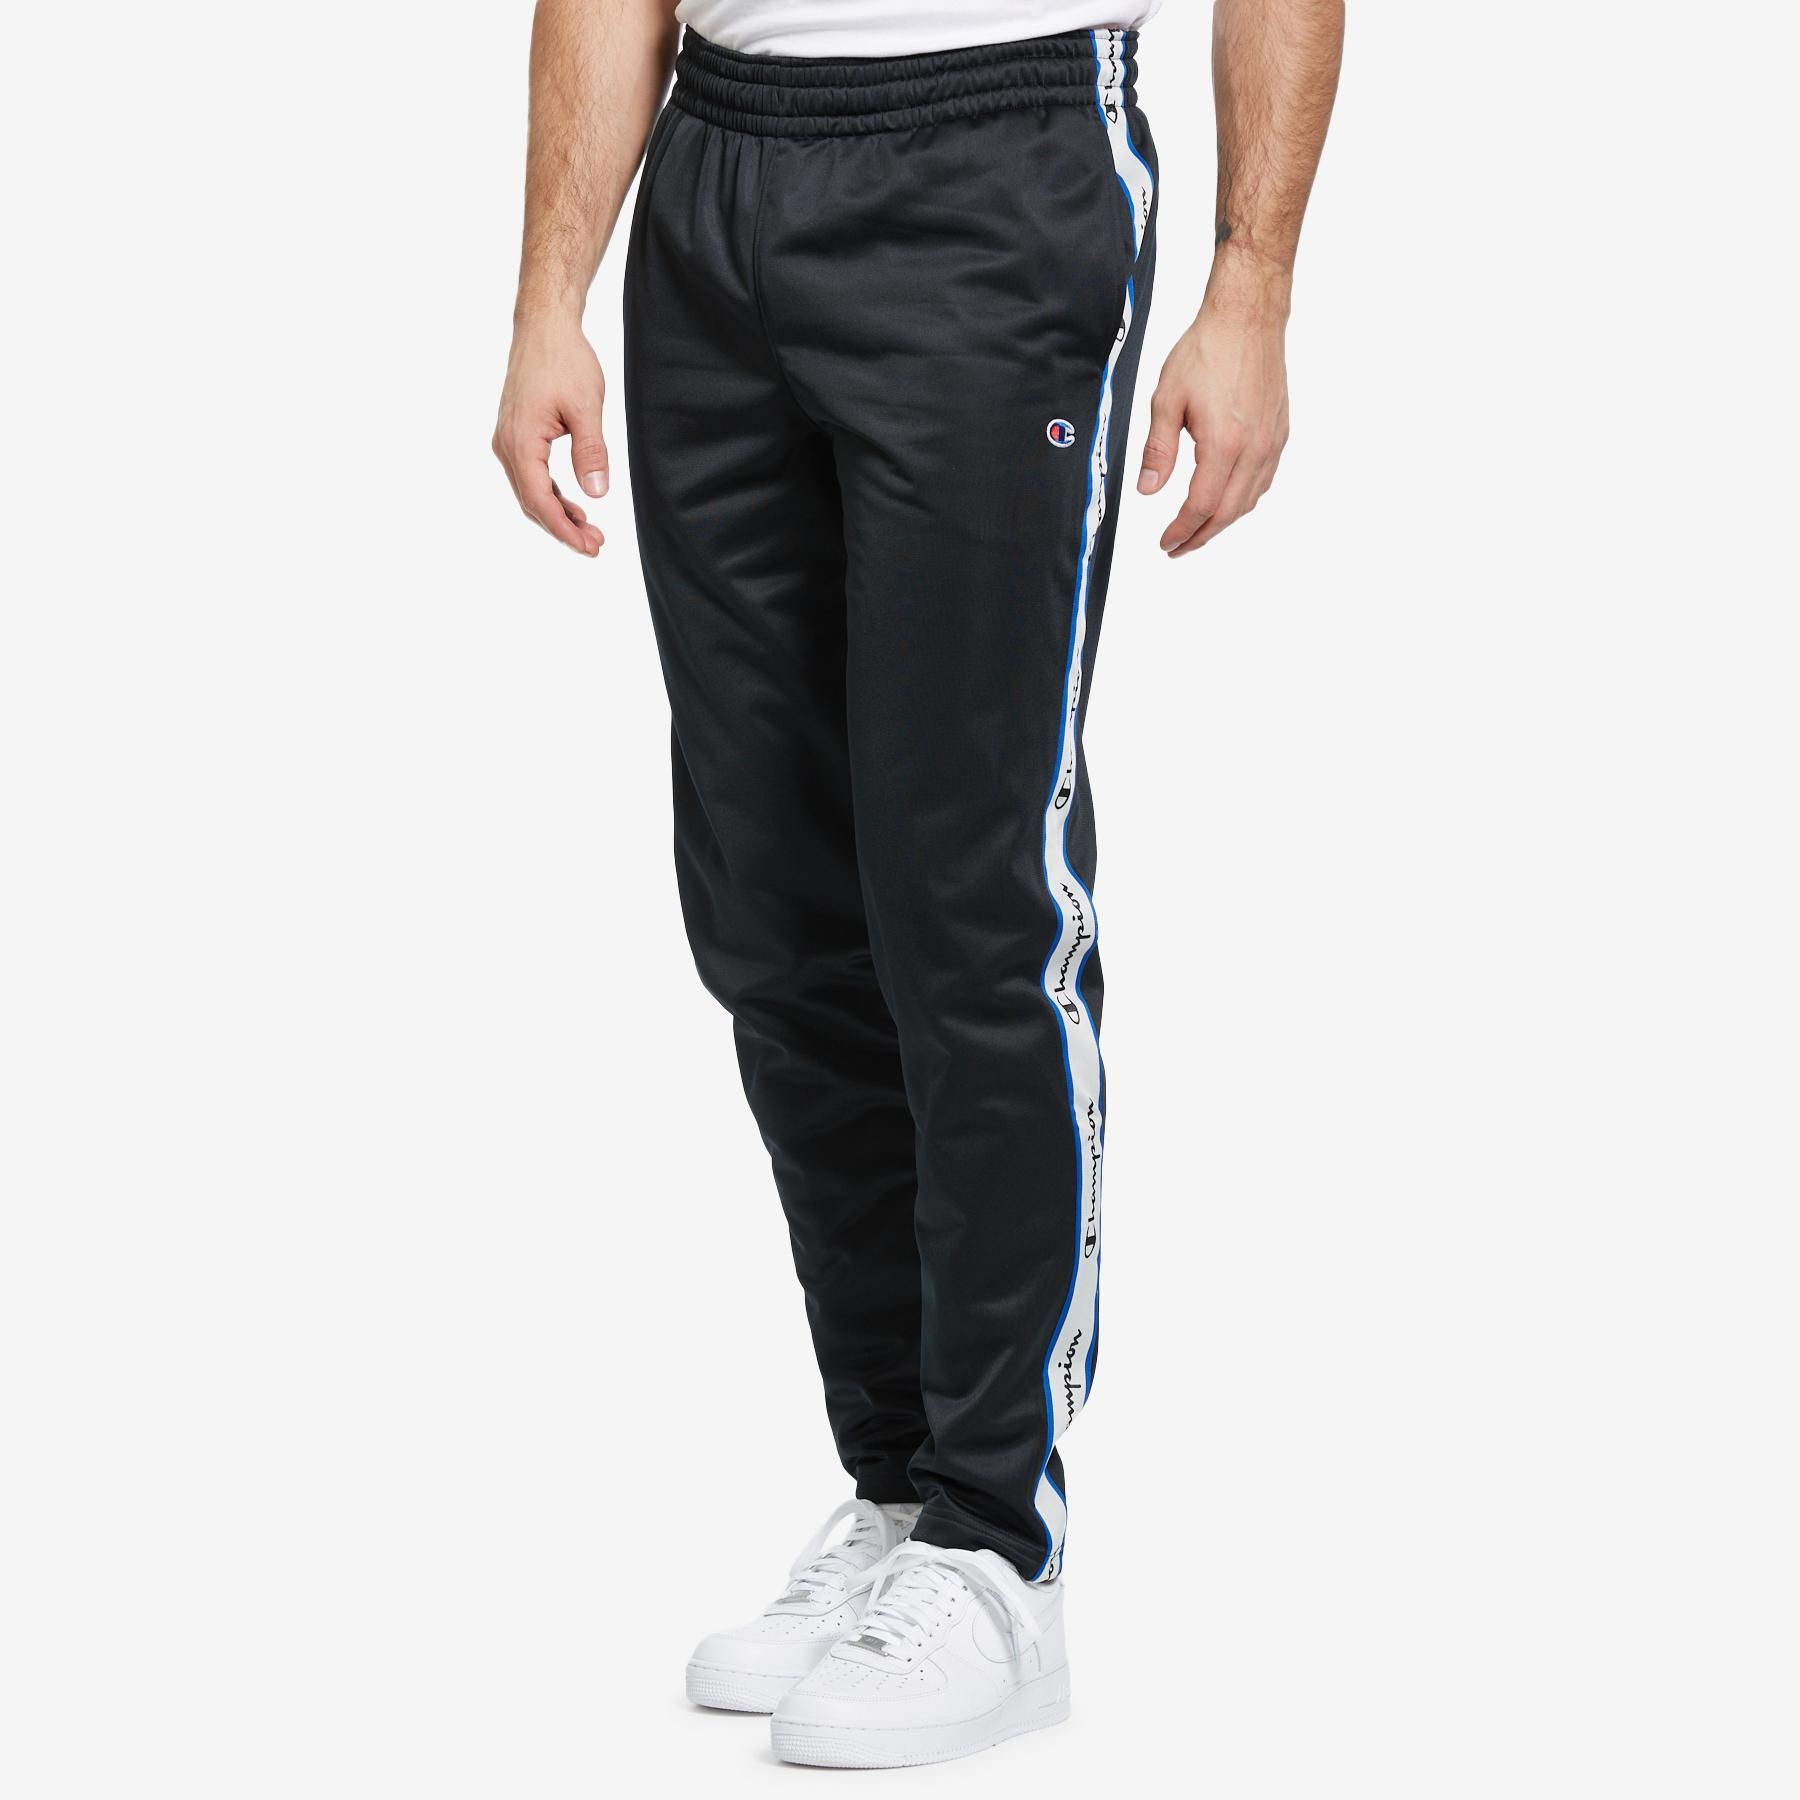 Men's Track Pants, Logo Side Taping